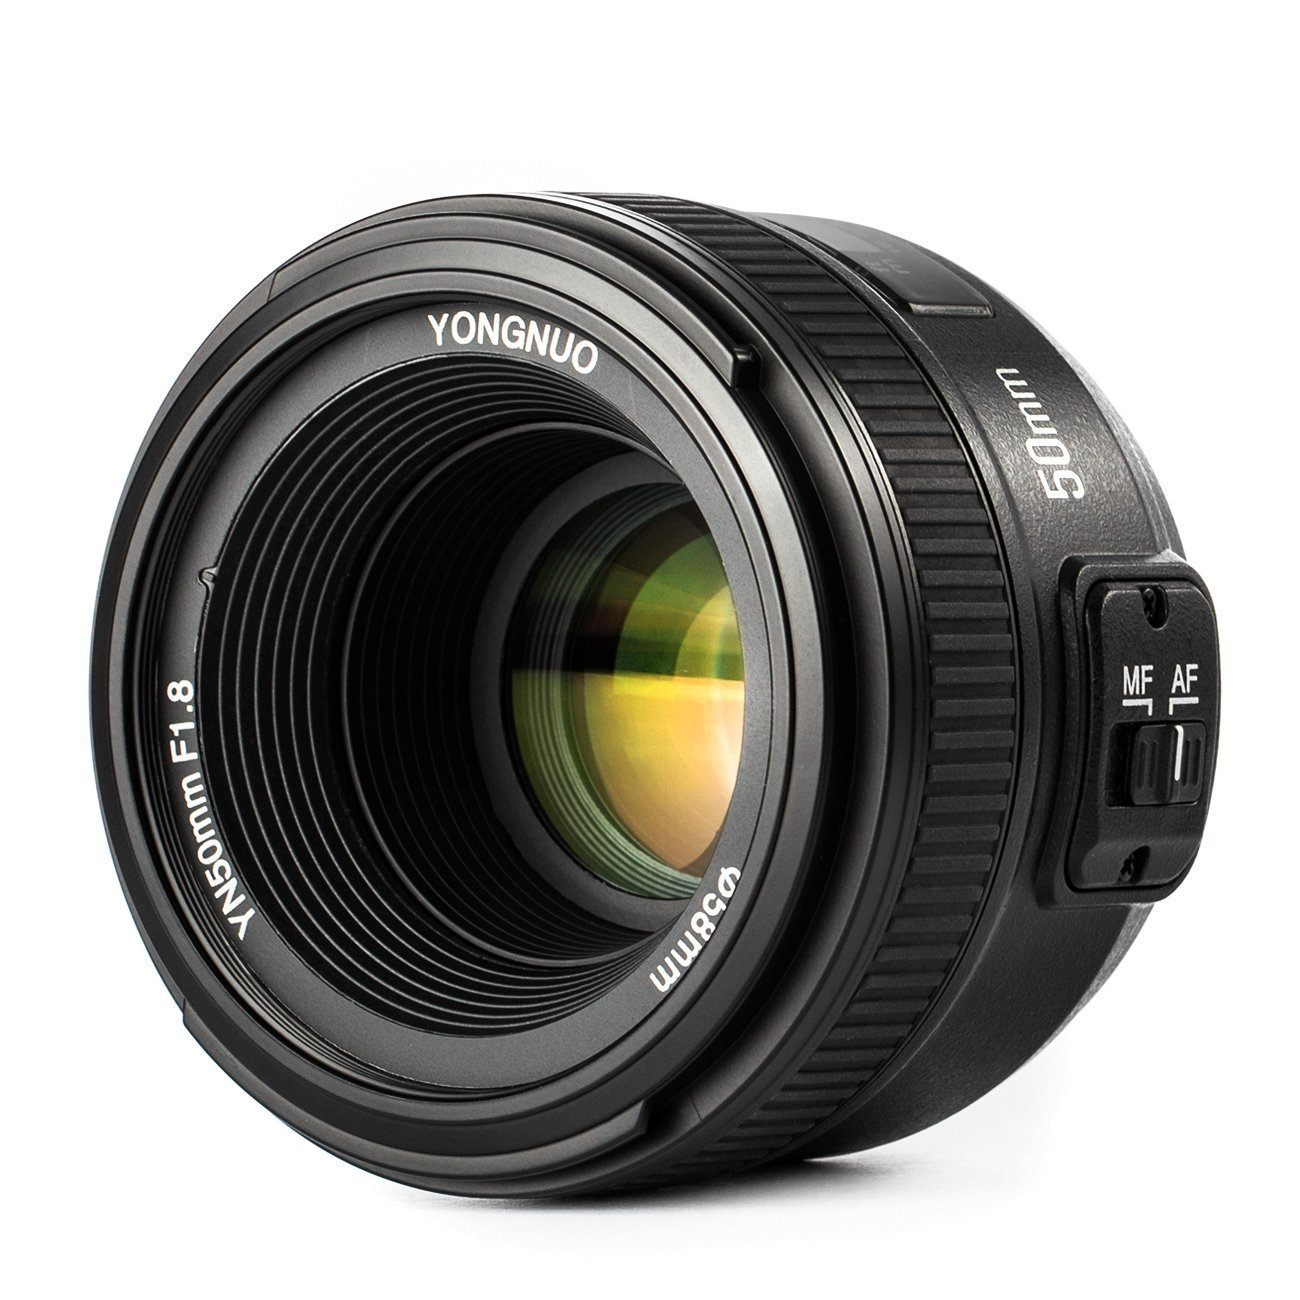 YONGNUO YN50mm F1.8 Lens Large Aperture Auto Focus Compact Lens with WINGONEER Flash Diffuser for Nikon Camera by Yongnuo